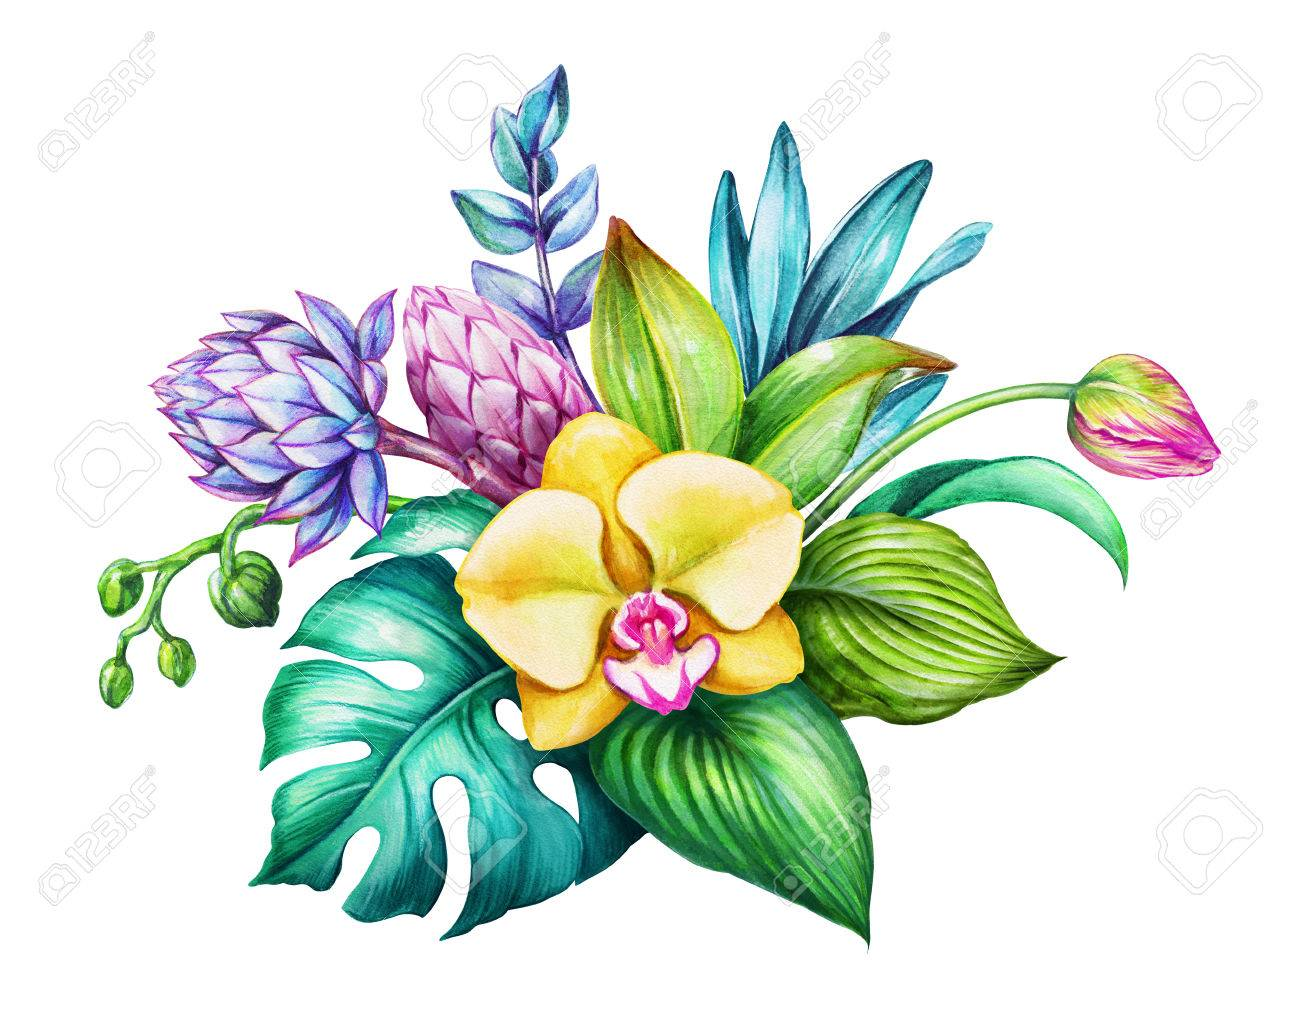 Watercolor Floral Illustration Exotic Nature Tropical Flowers